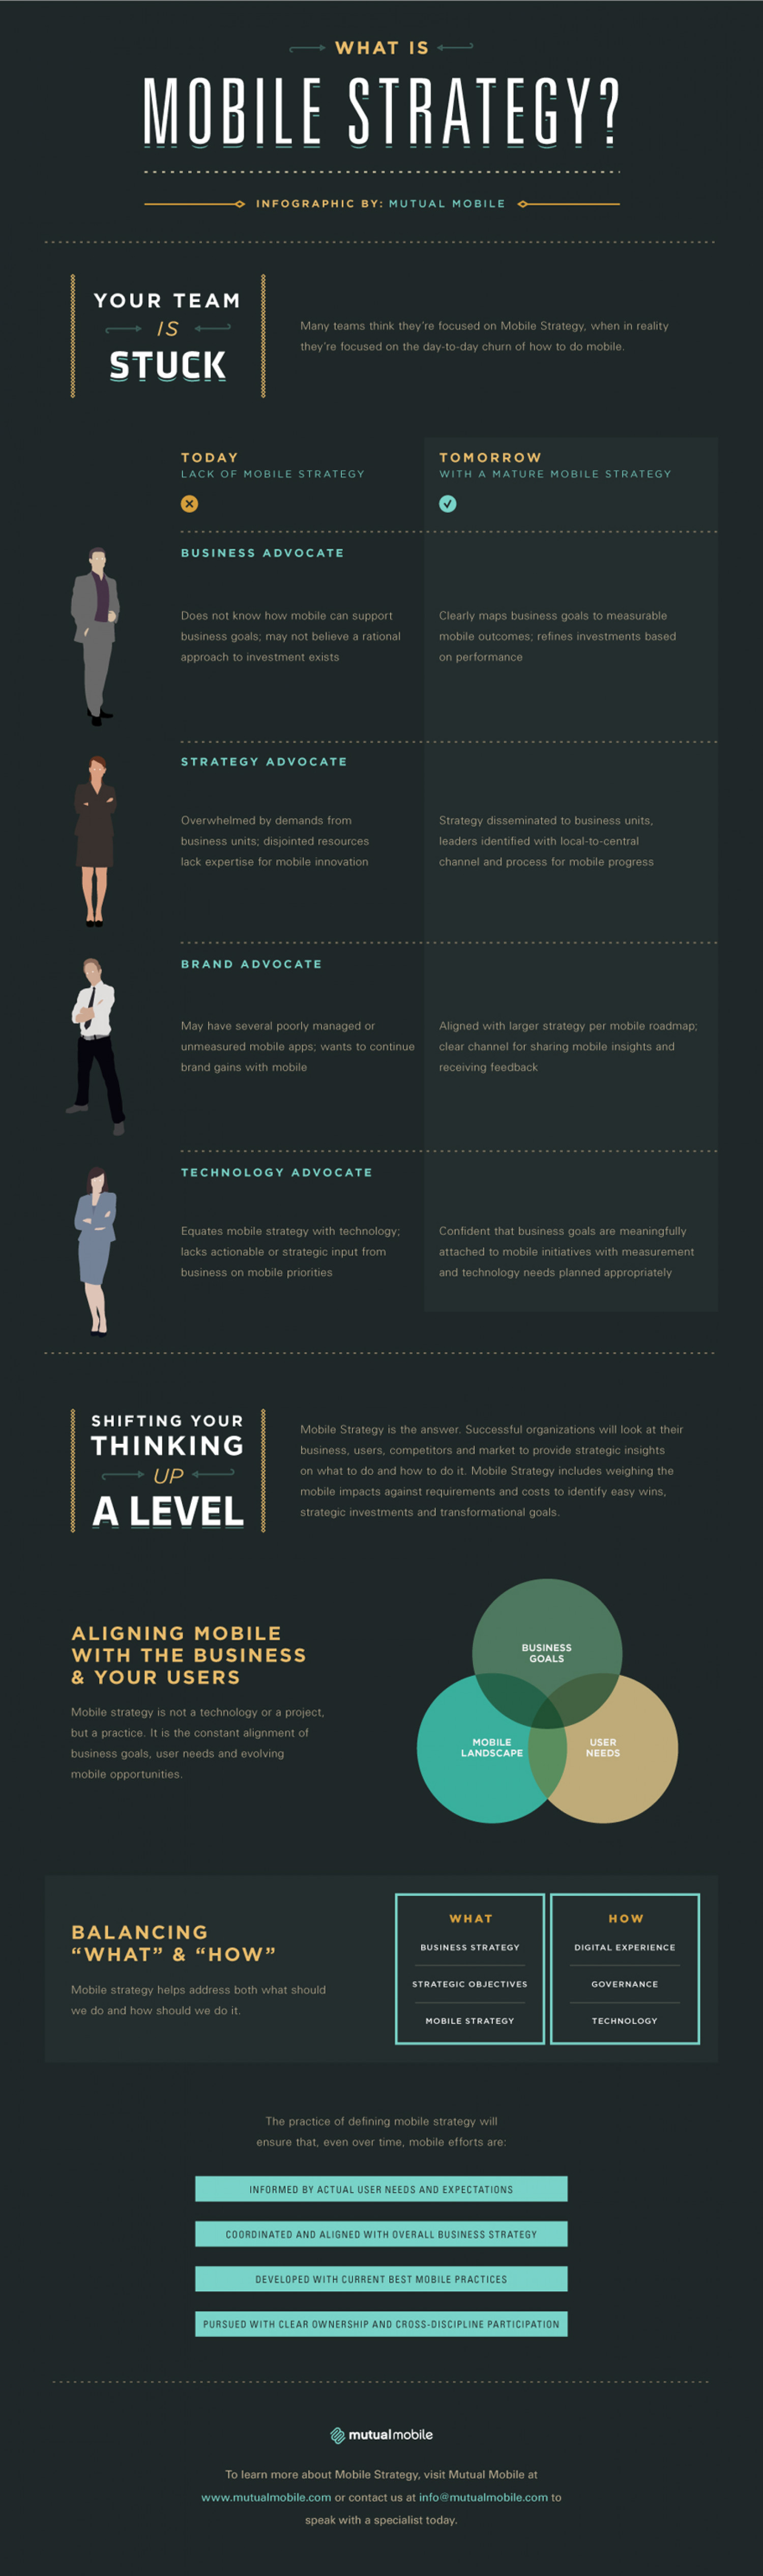 What Is Mobile Strategy Infographic